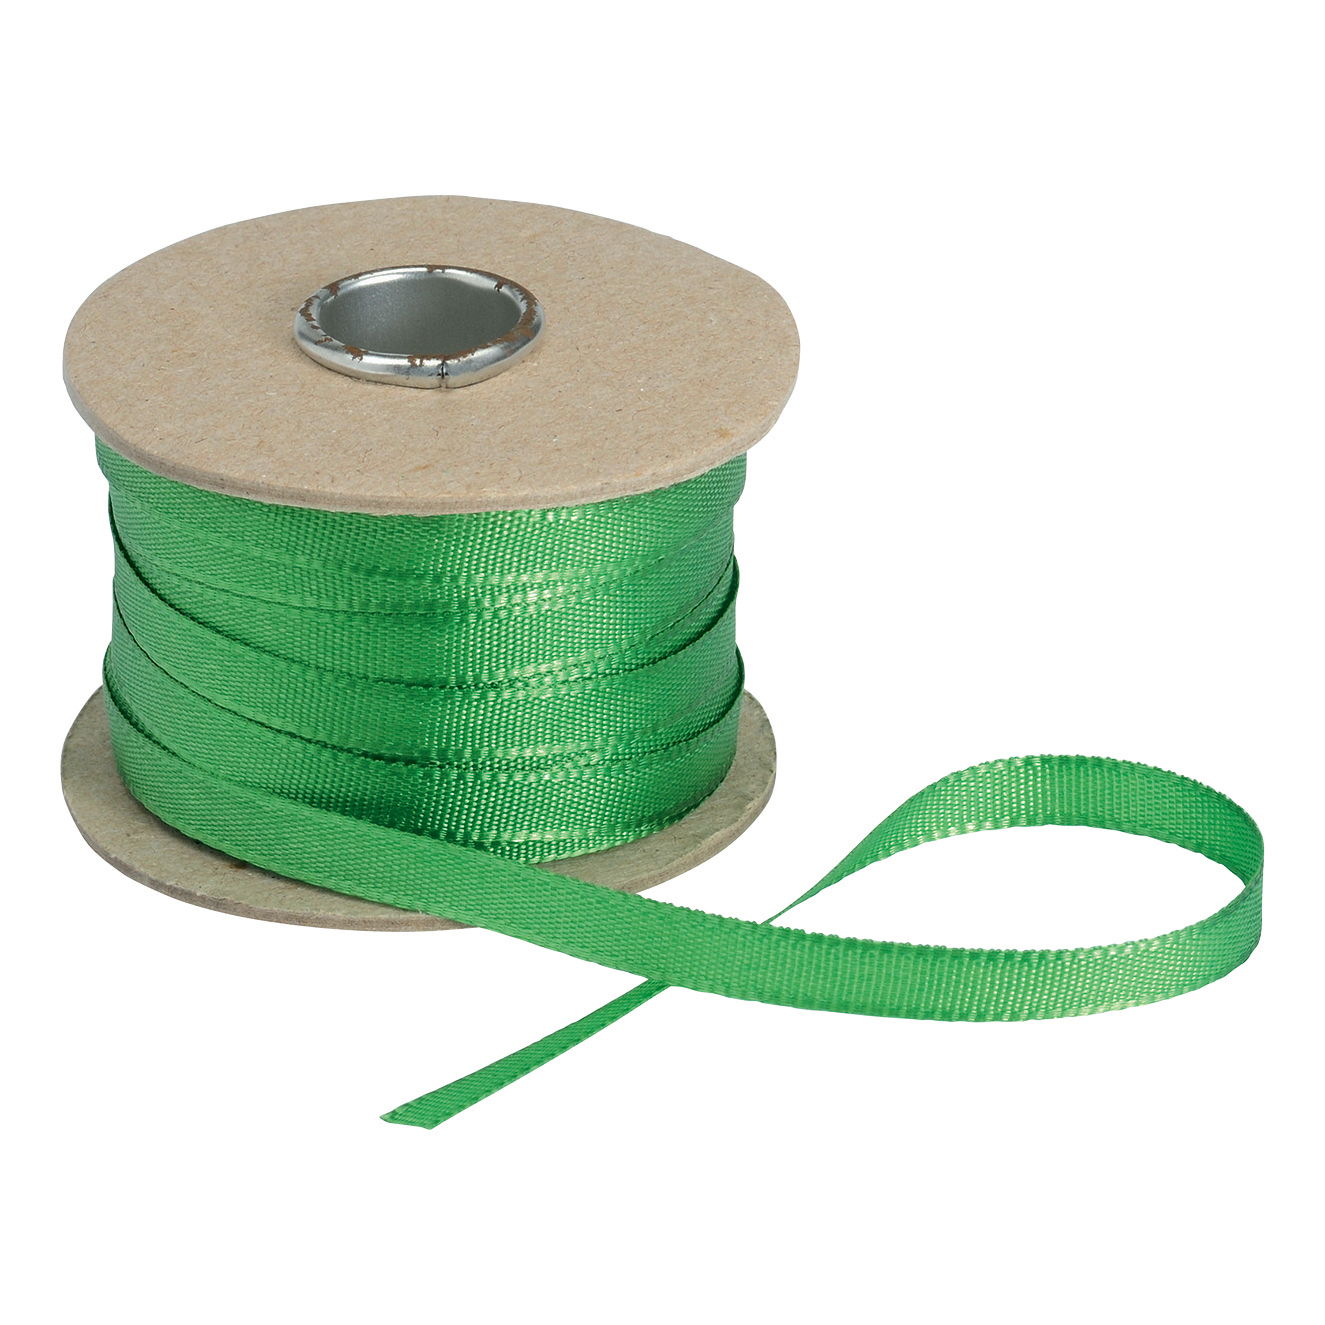 Legal Sundries 5 Star Office Legal Tape Reel 6mmx50m Silky Green